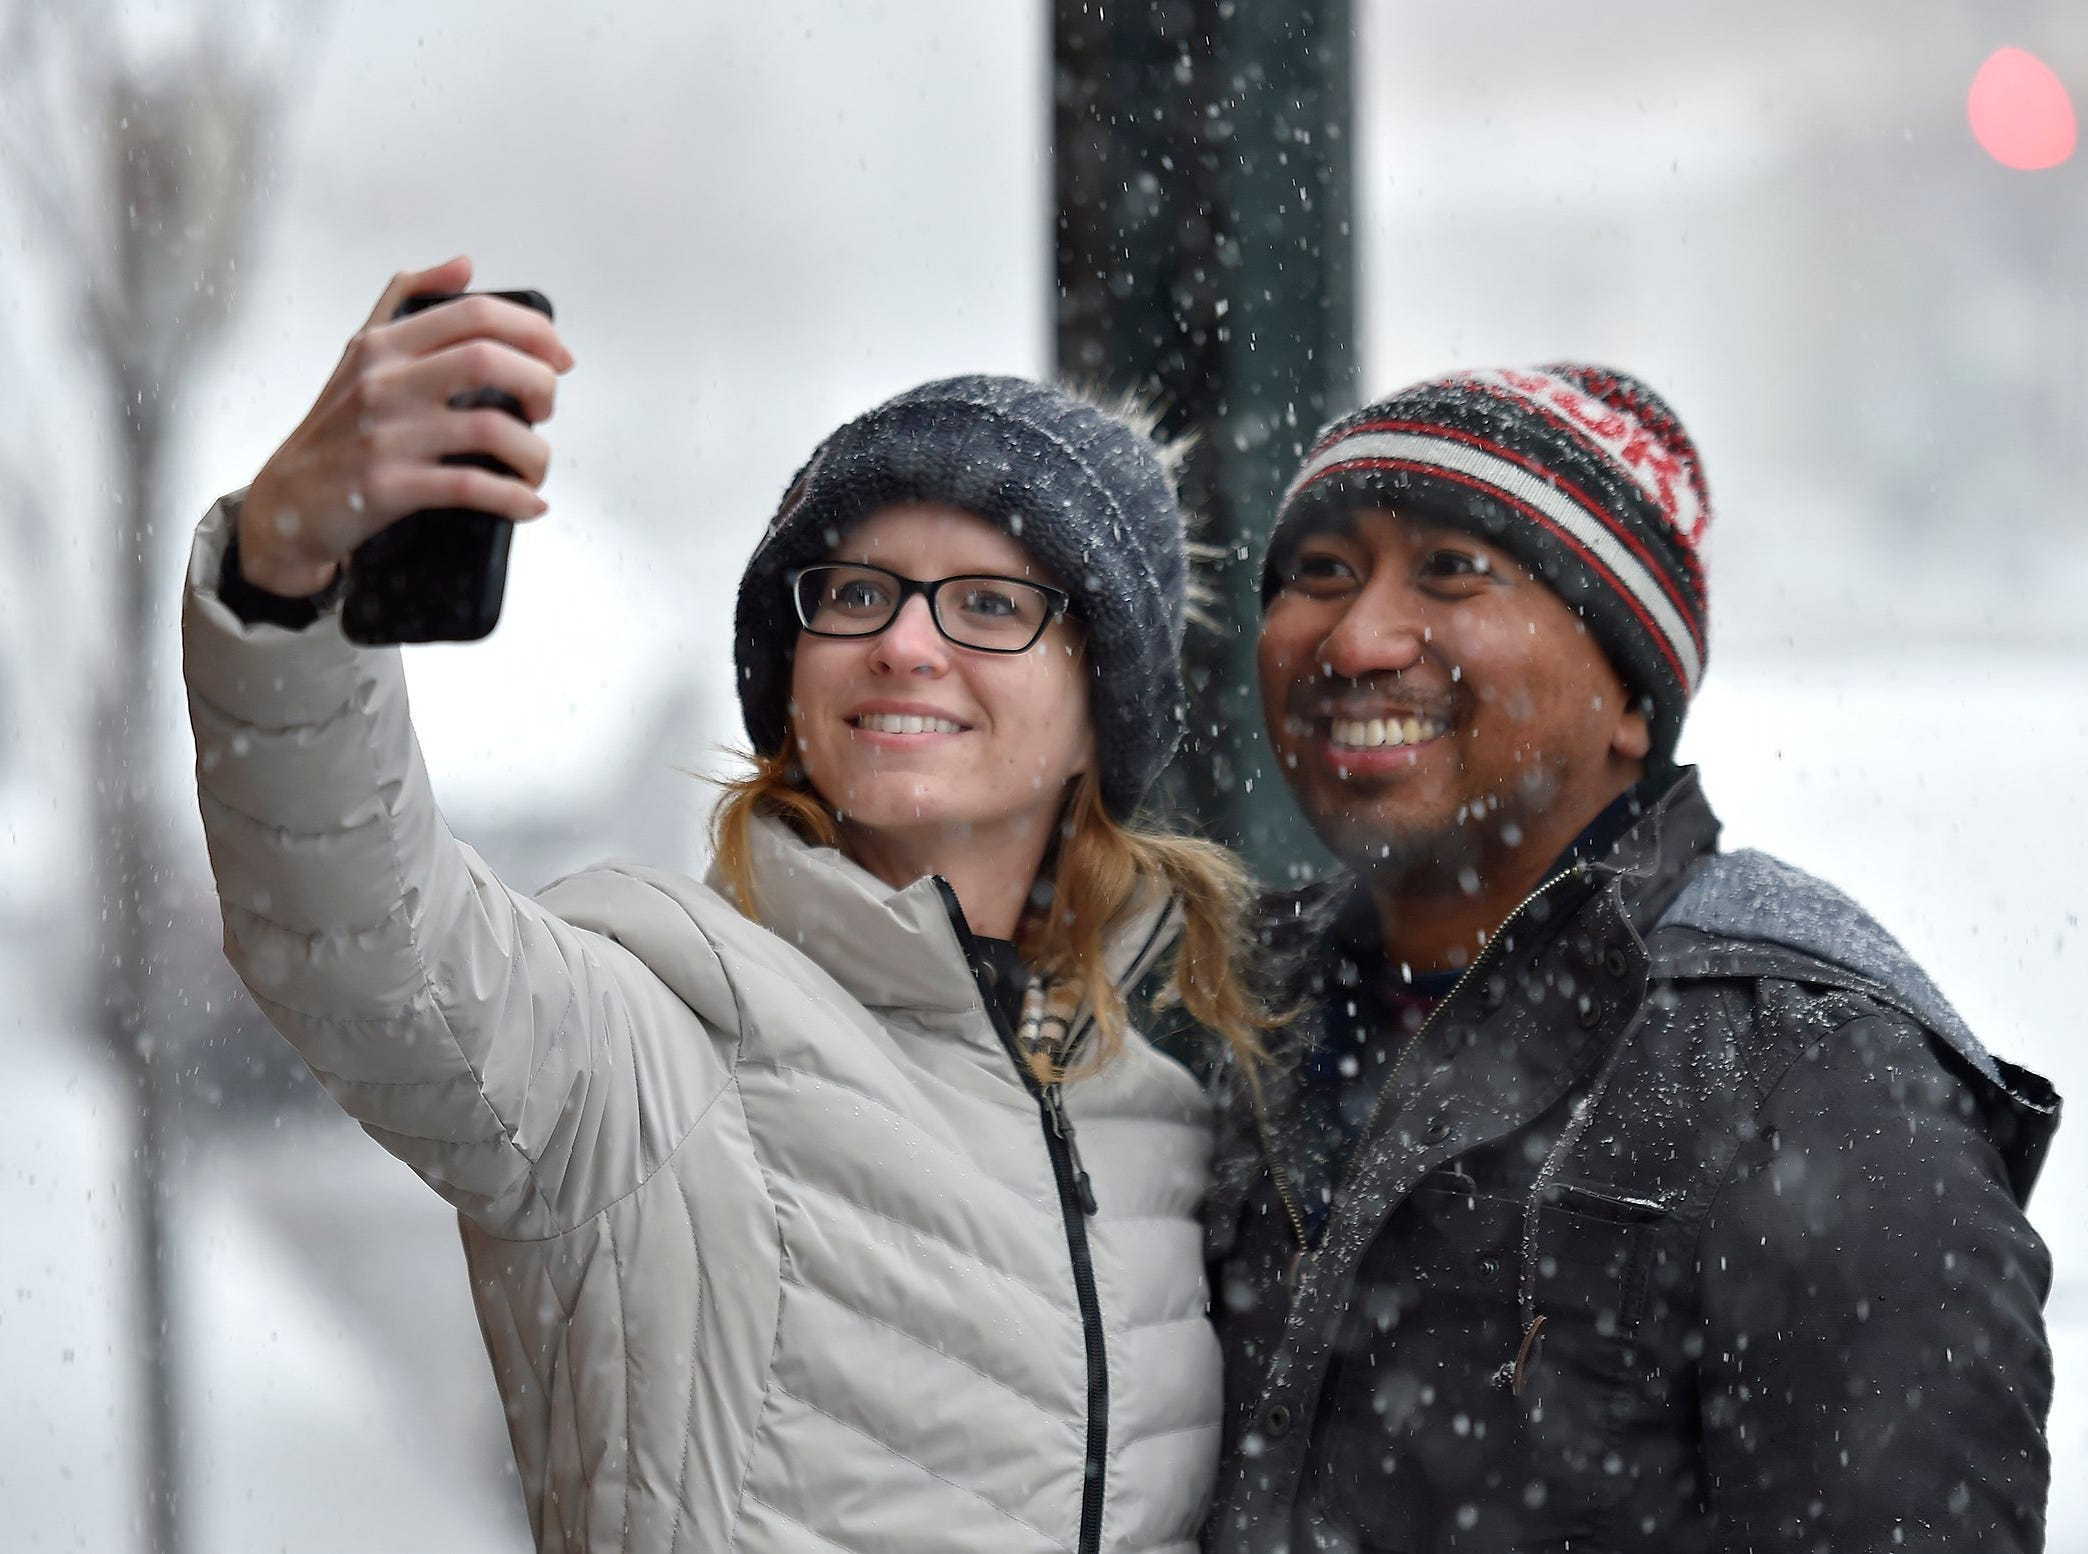 It was only the third time Kristin Brooker had seen snow, so a selfie was in order Sunday, Nov. 25,2018 with friend Dominic Francia, who grew up in Kansas City. The pair stopped on their walk around the Country Club Plaza just as the heavy snow began to fall. Both now live in Los Angeles.